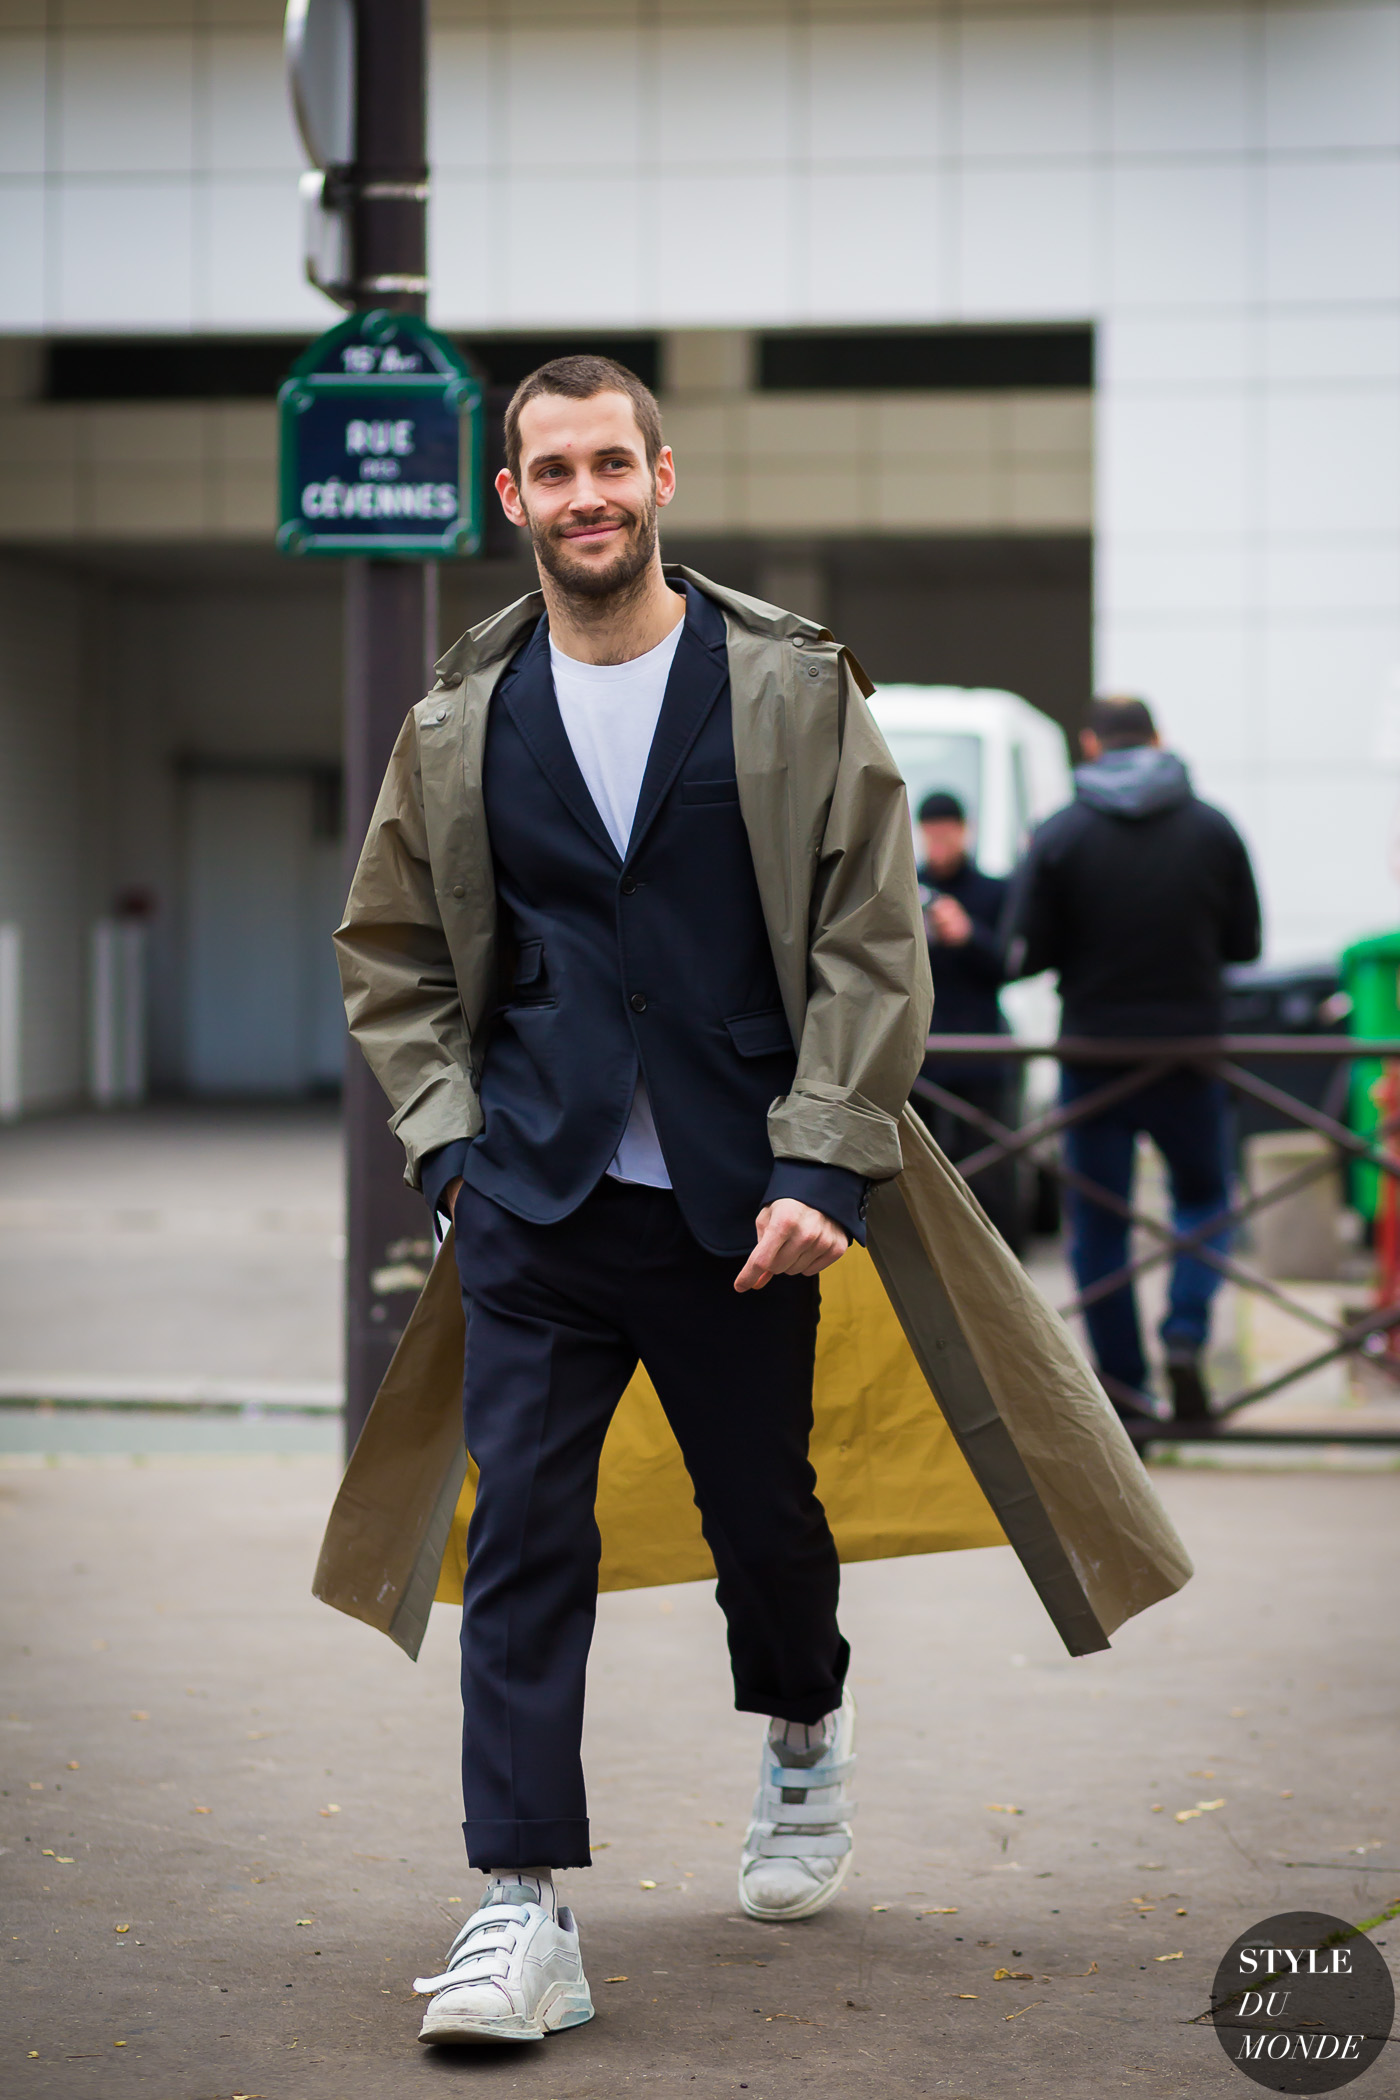 Simon Porte Jacquemus Street Style Street Fashion Streetsnaps by STYLEDUMONDE Street Style Fashion Photography